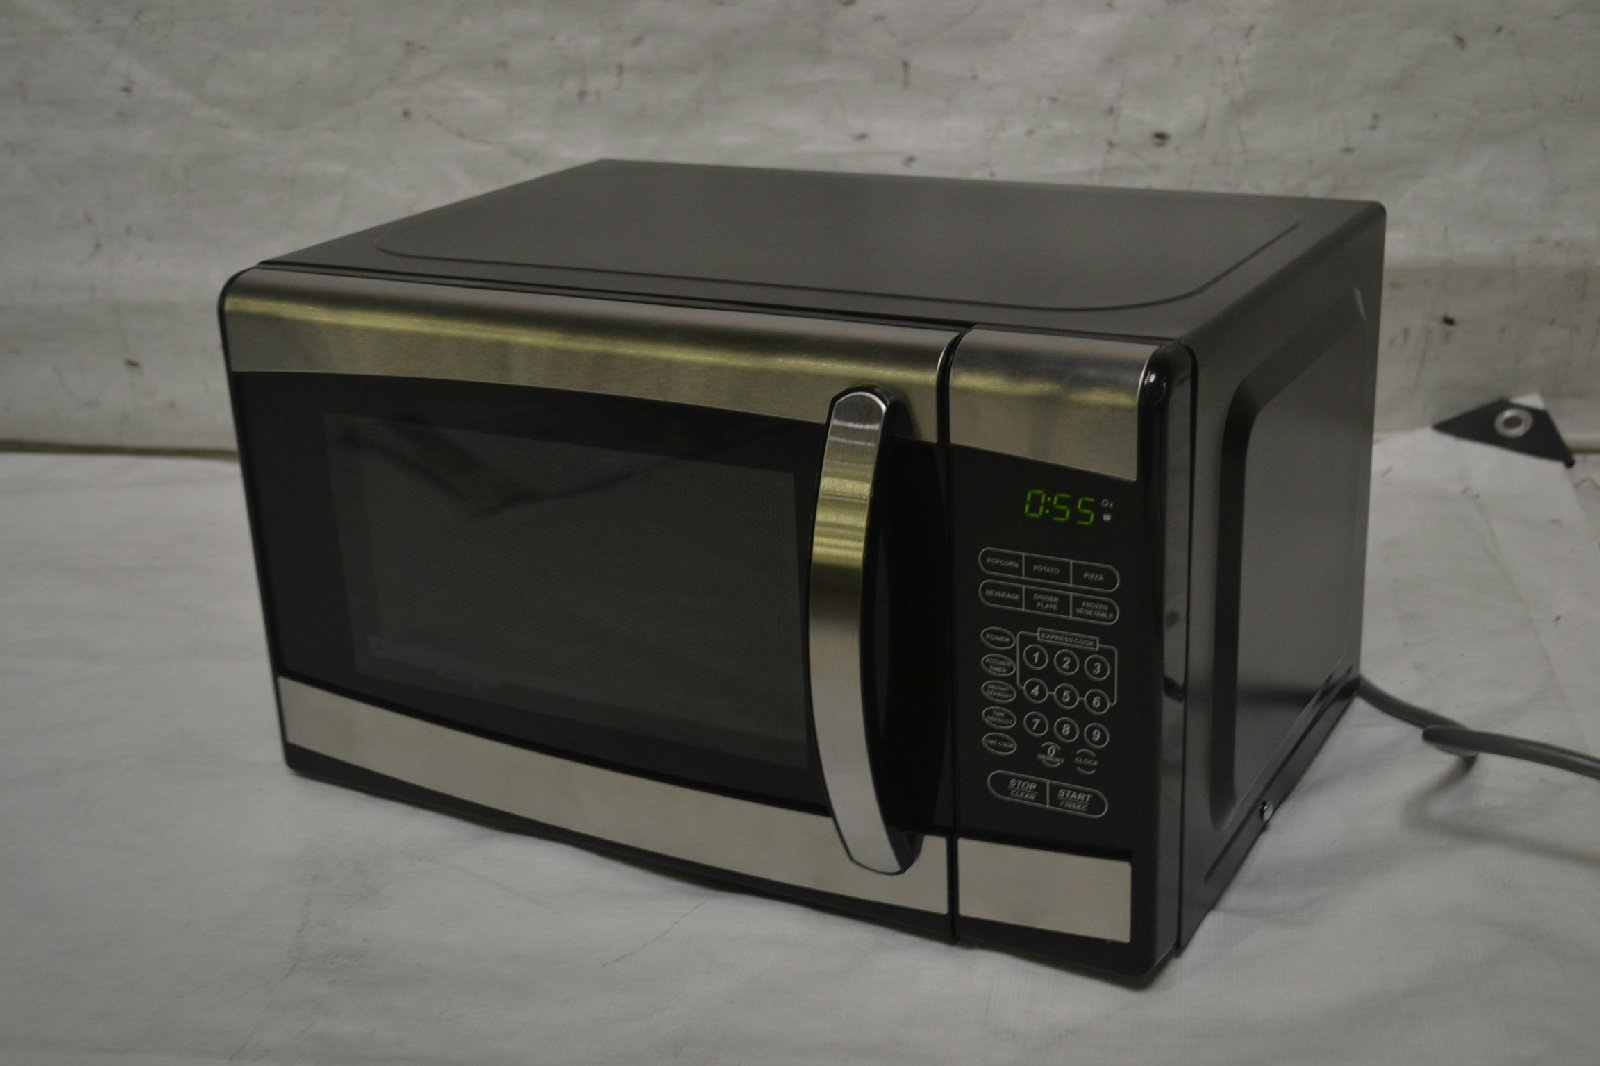 Countertop Microwave Black Stainless : ... Designer 0.7 cu.ft. Countertop Microwave, Black/Stainless Steel eBay